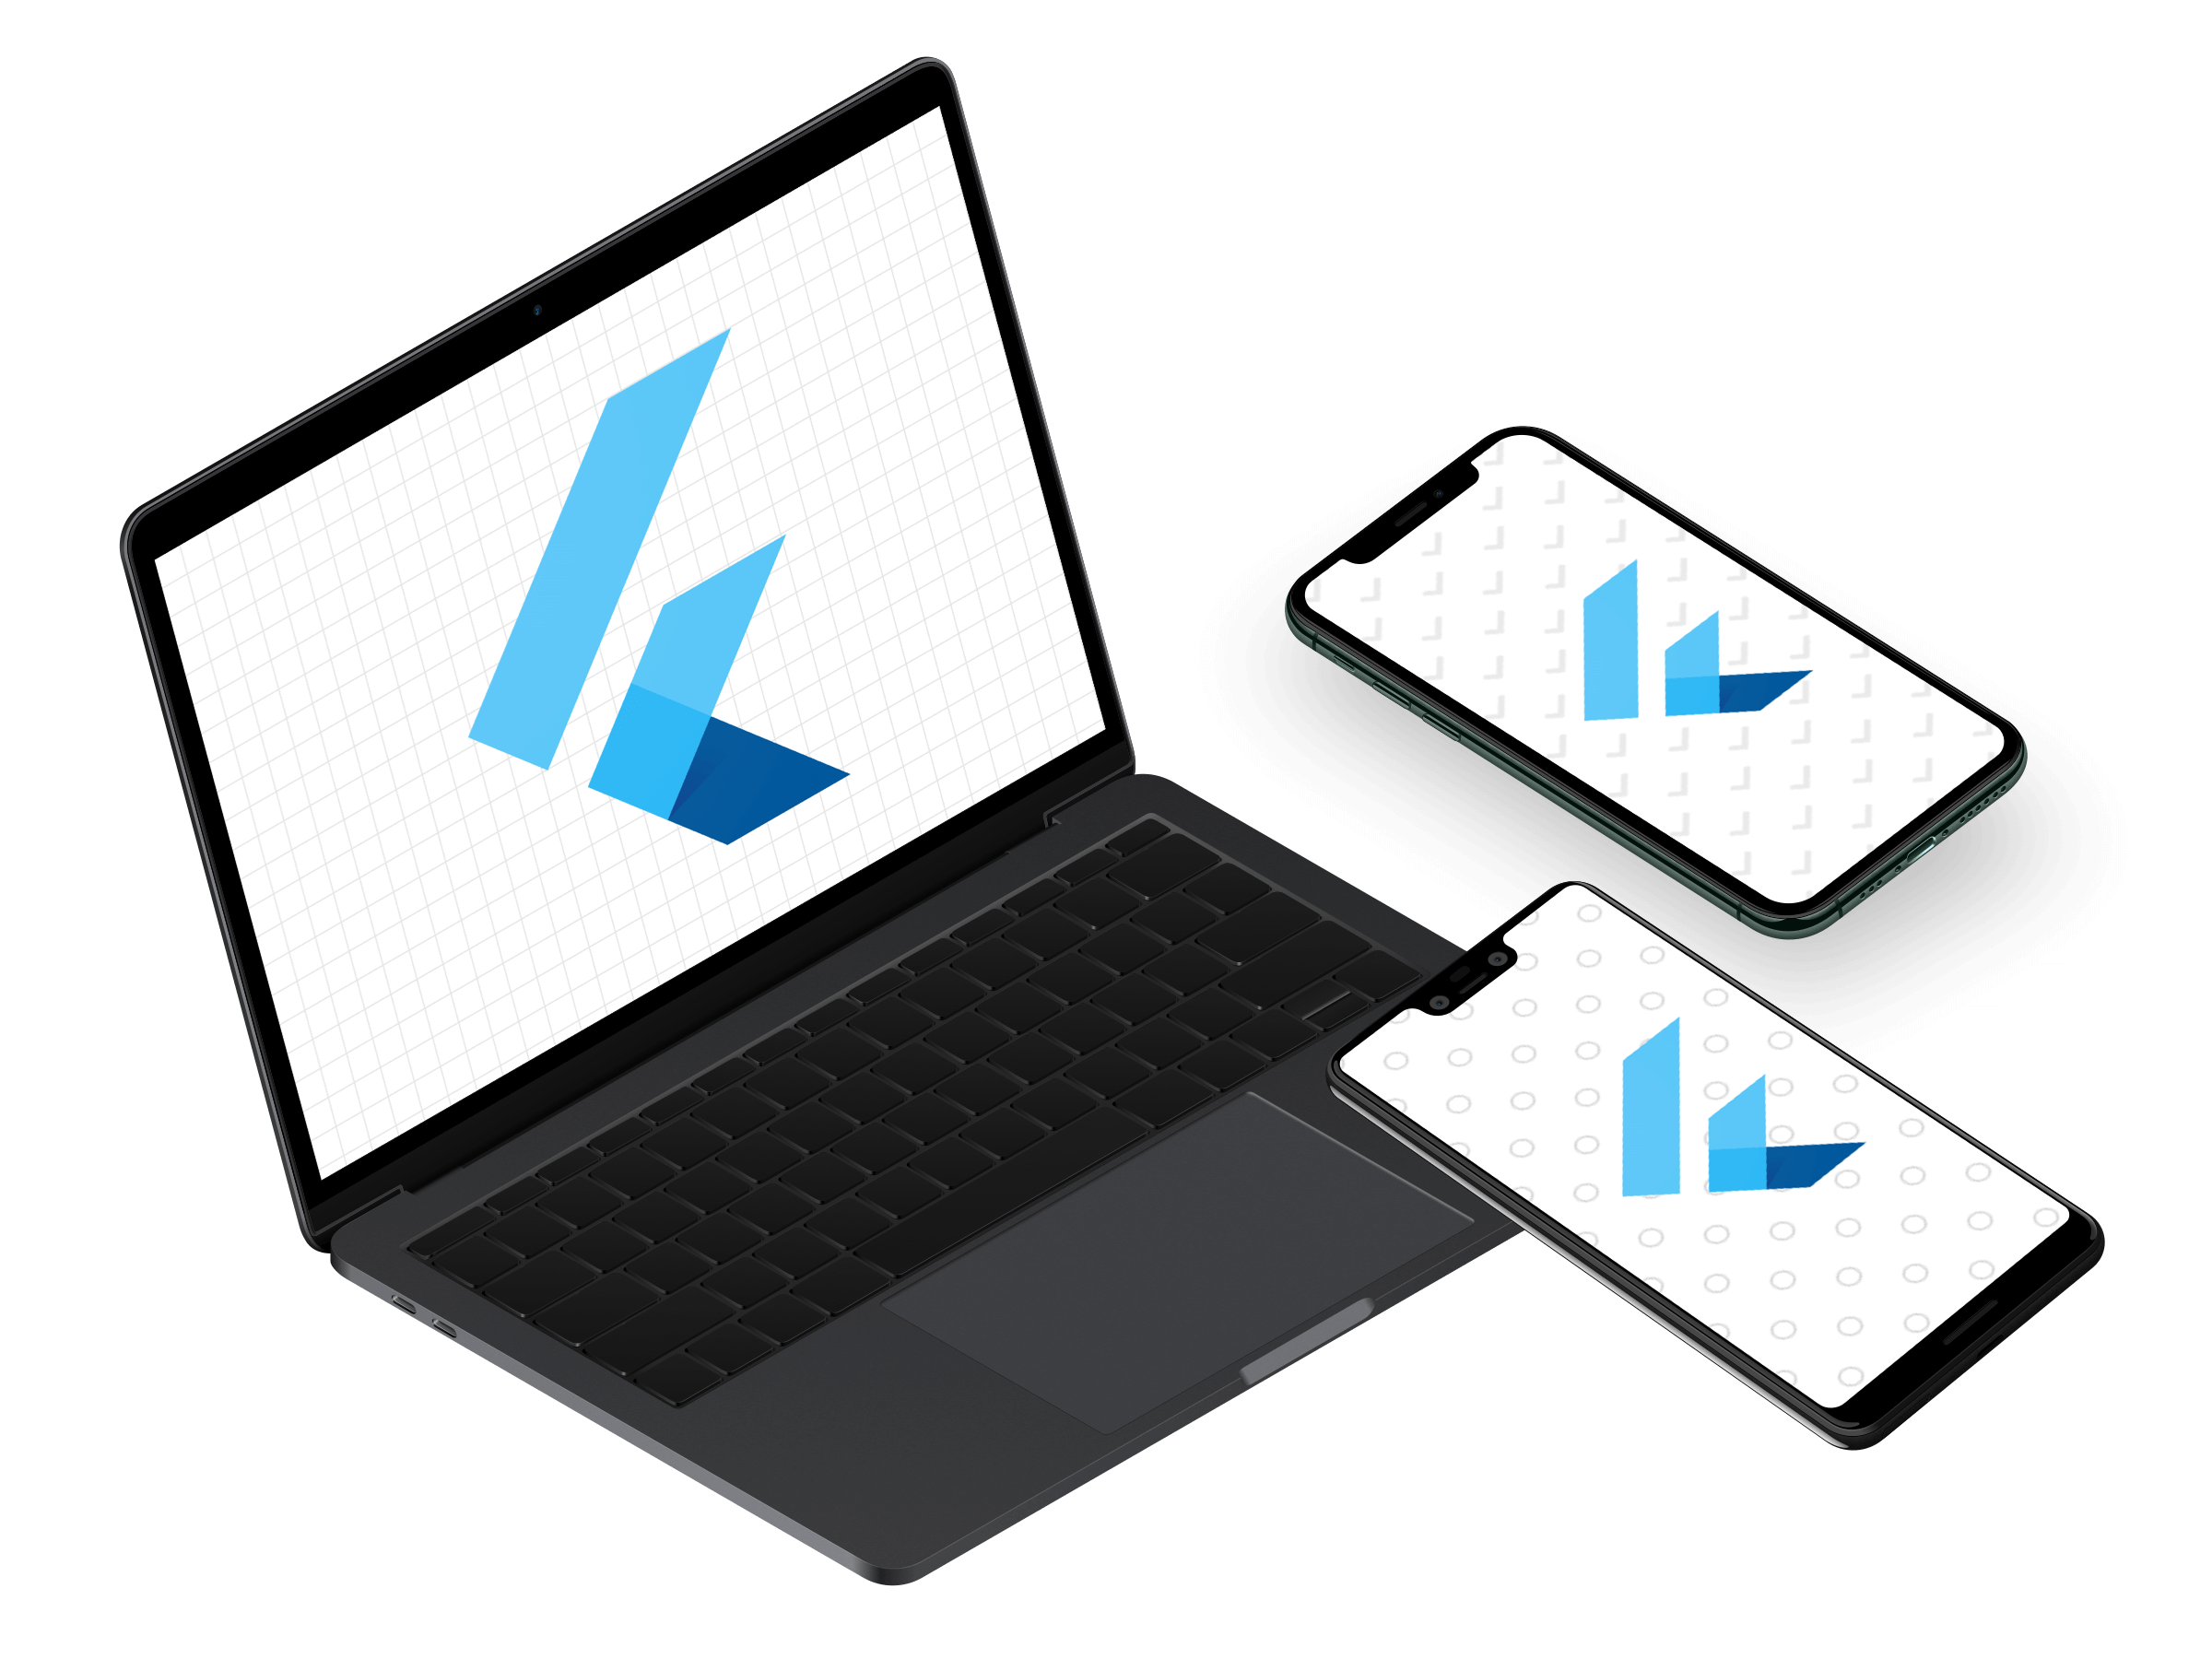 Laptop, iPhone, and Android phone with each screen displaying Flutter logo